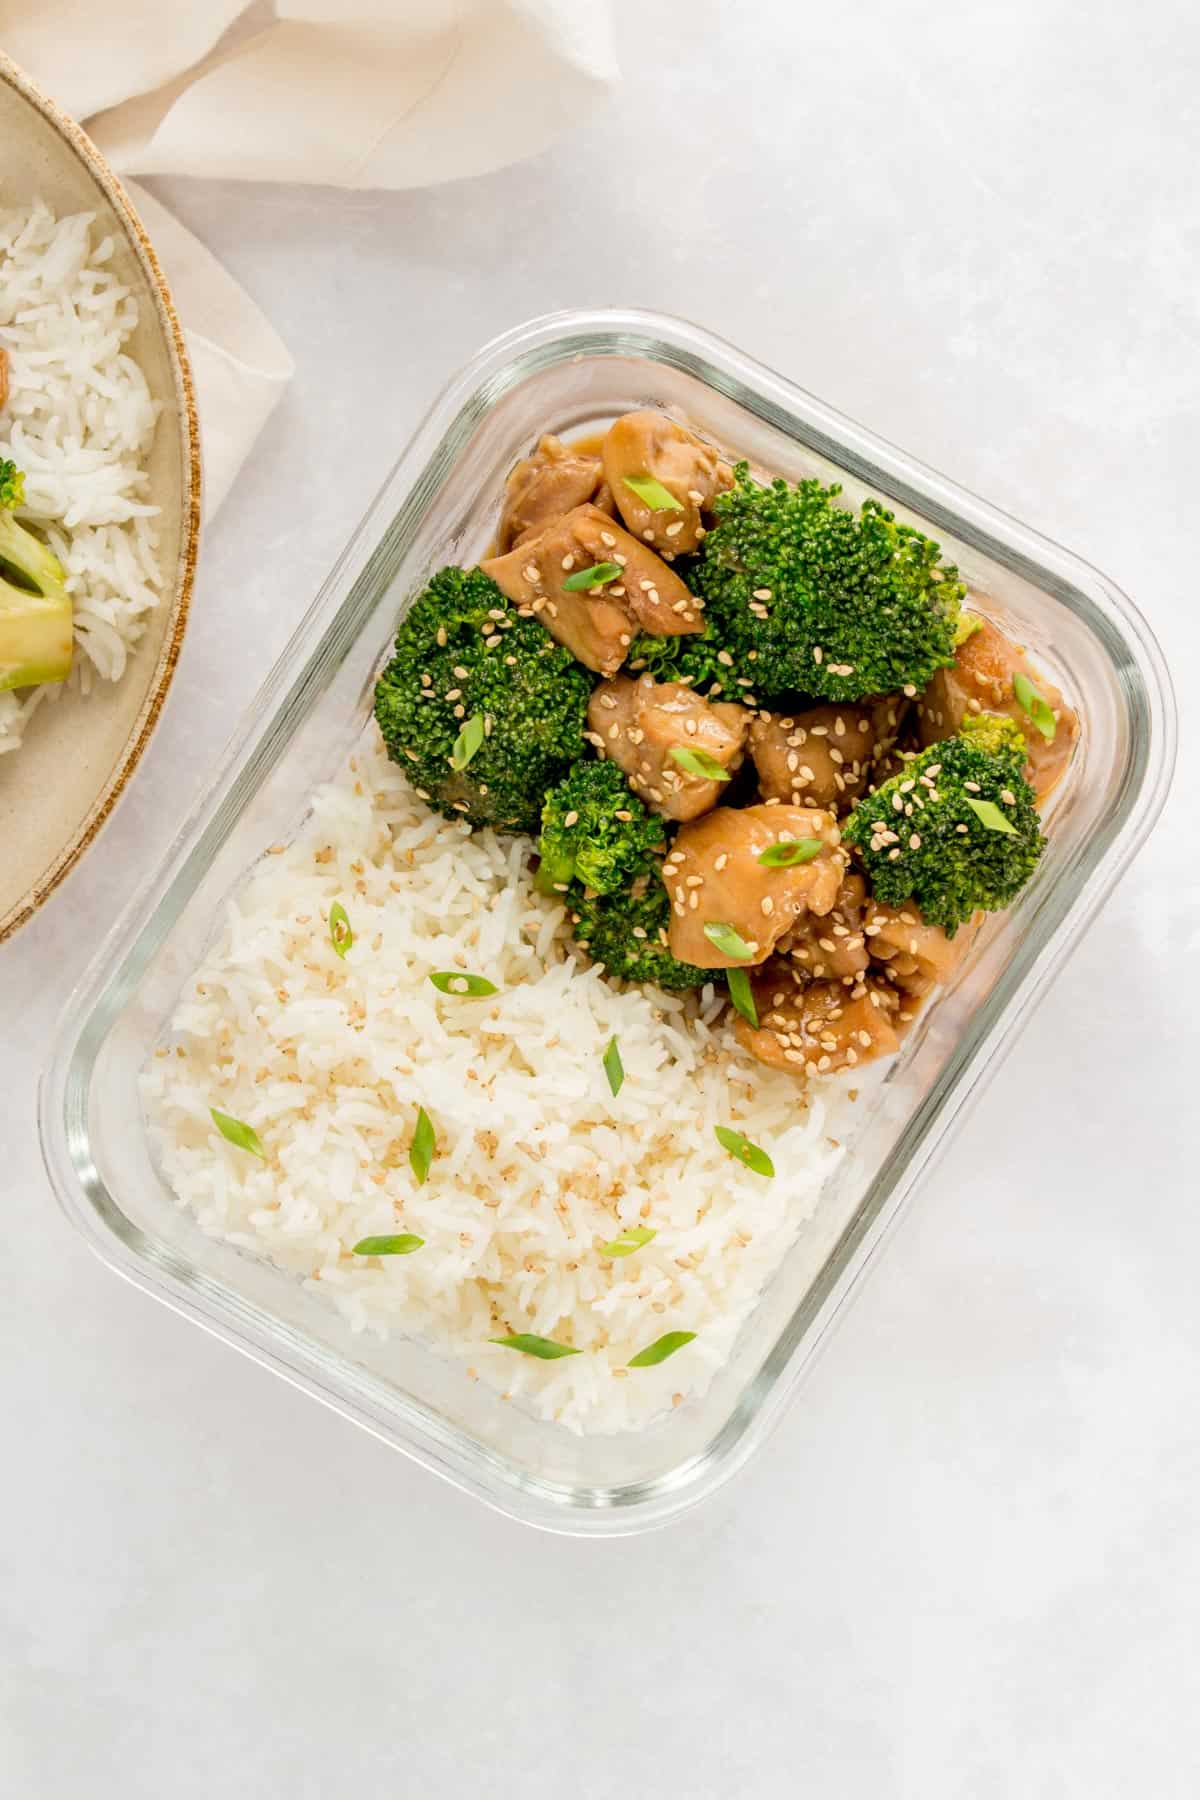 Meal prep container with chicken, rice, and broccoli.